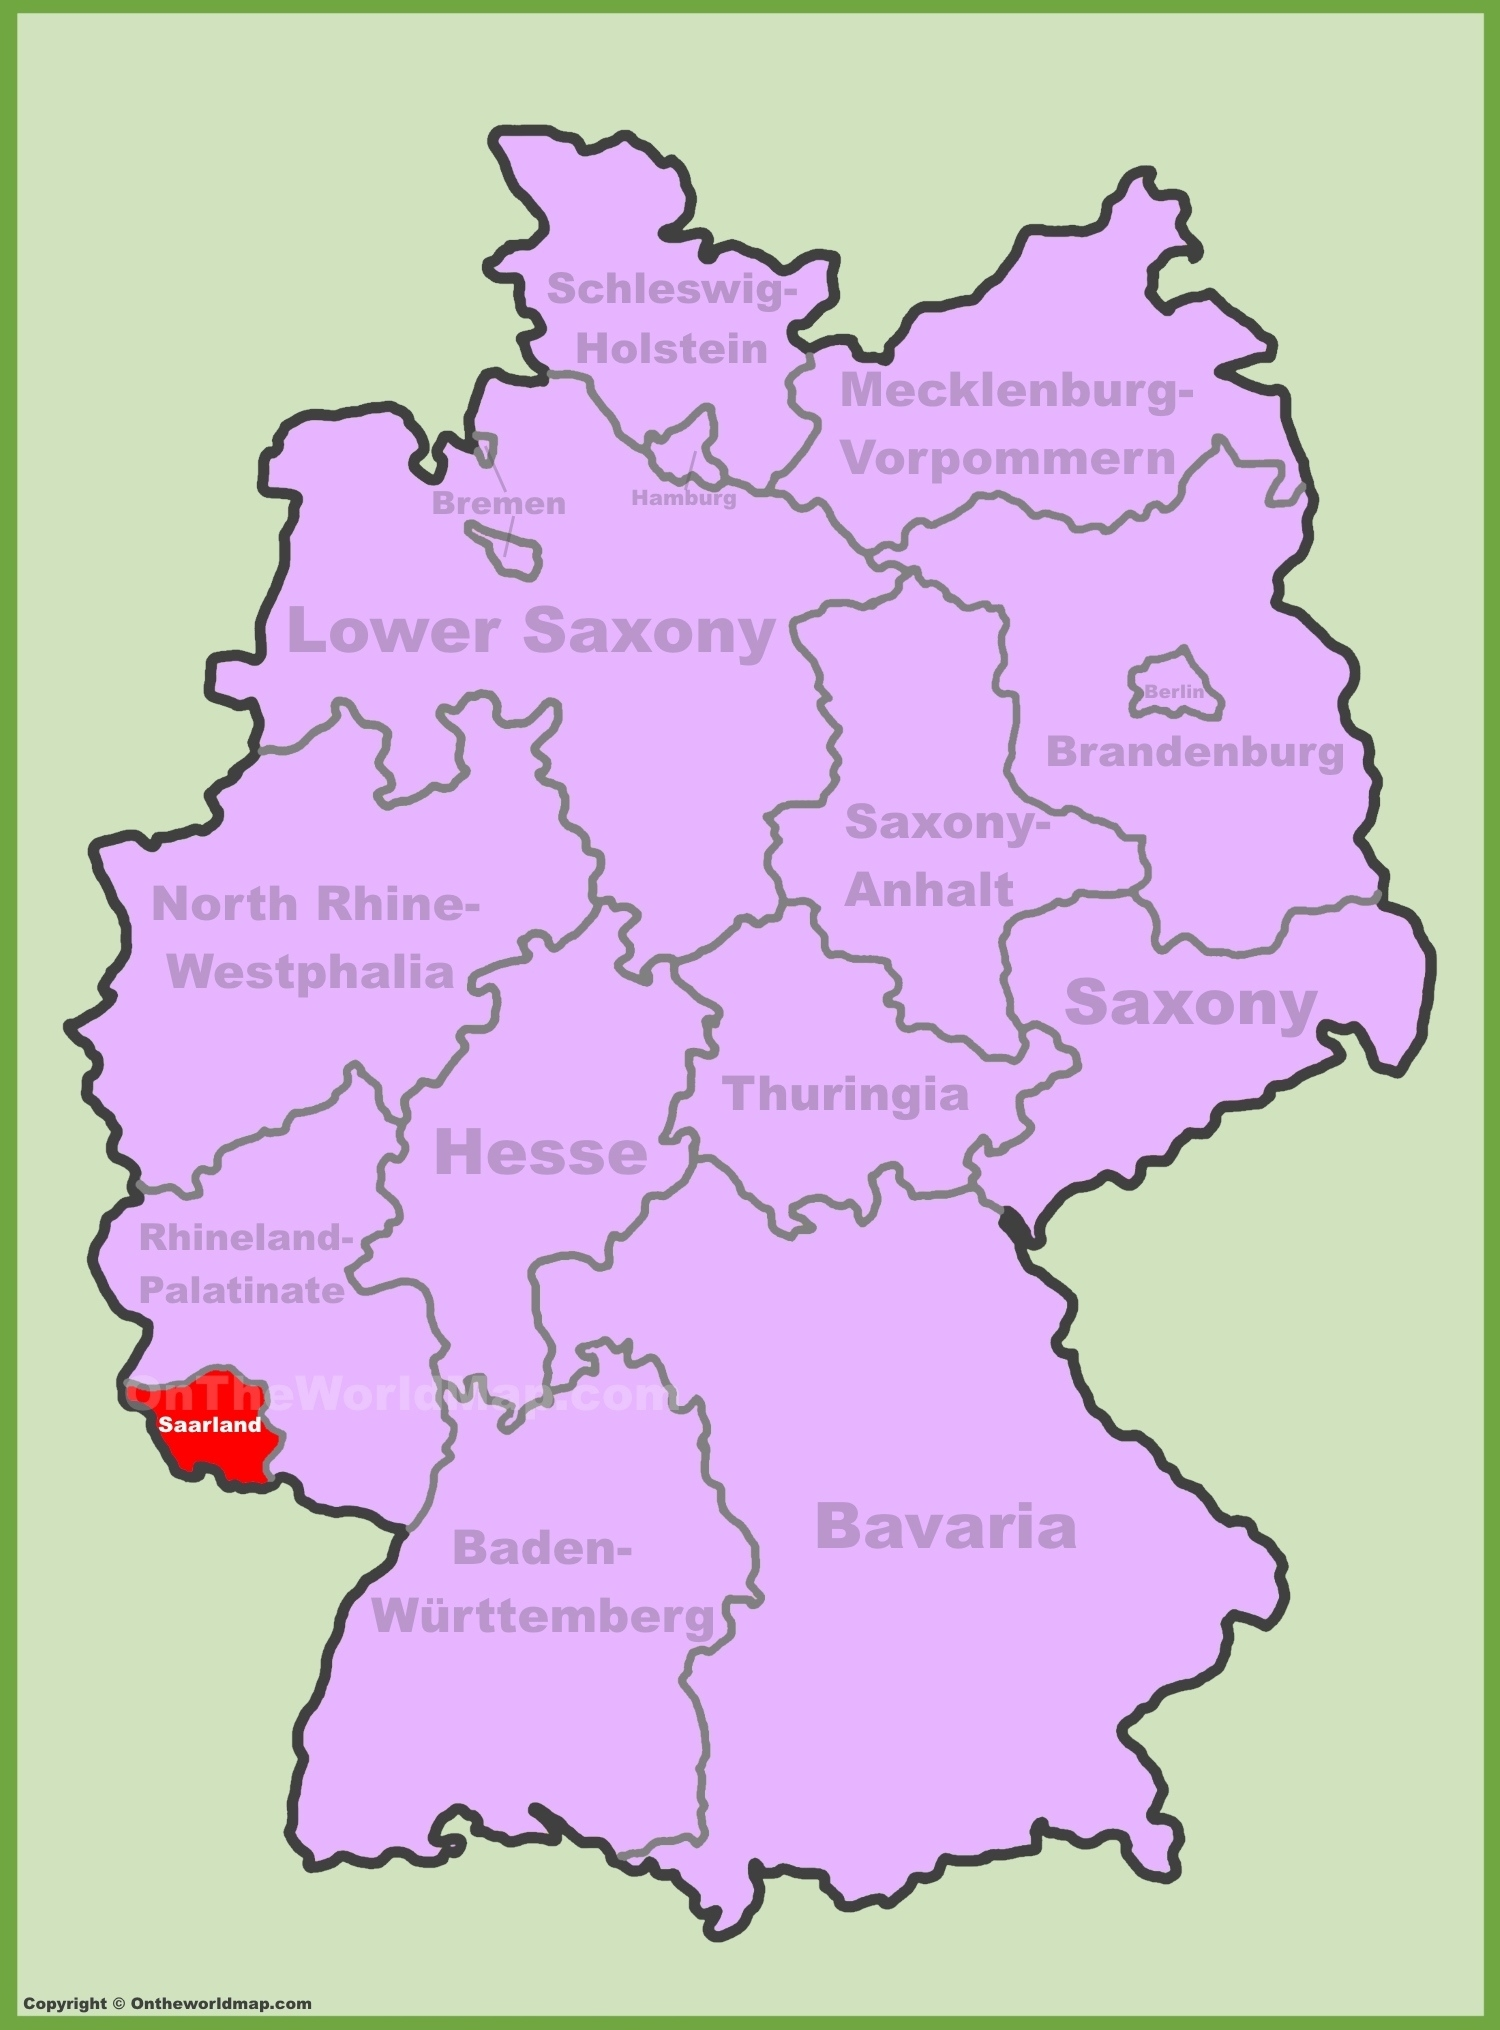 Saarland Location On The Germany Map in Stuttgart Germany On A Map